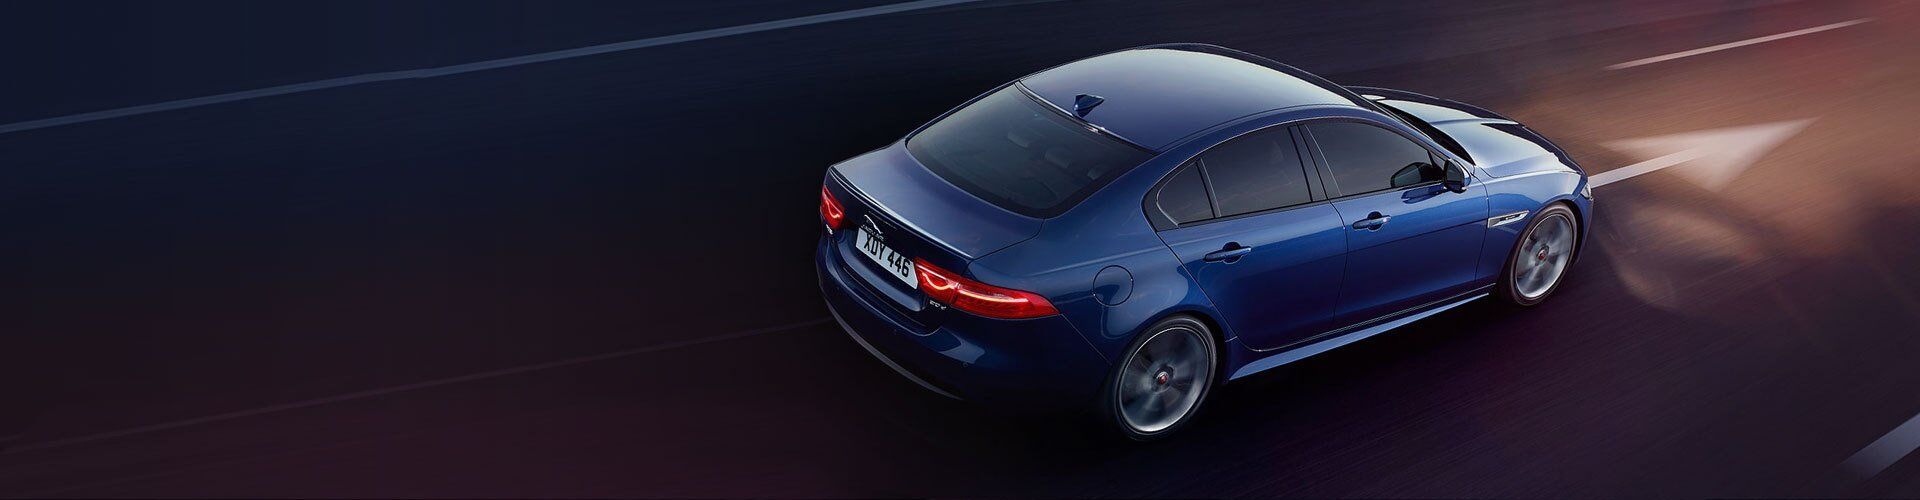 New Jaguar XE at Jaguar San Jose